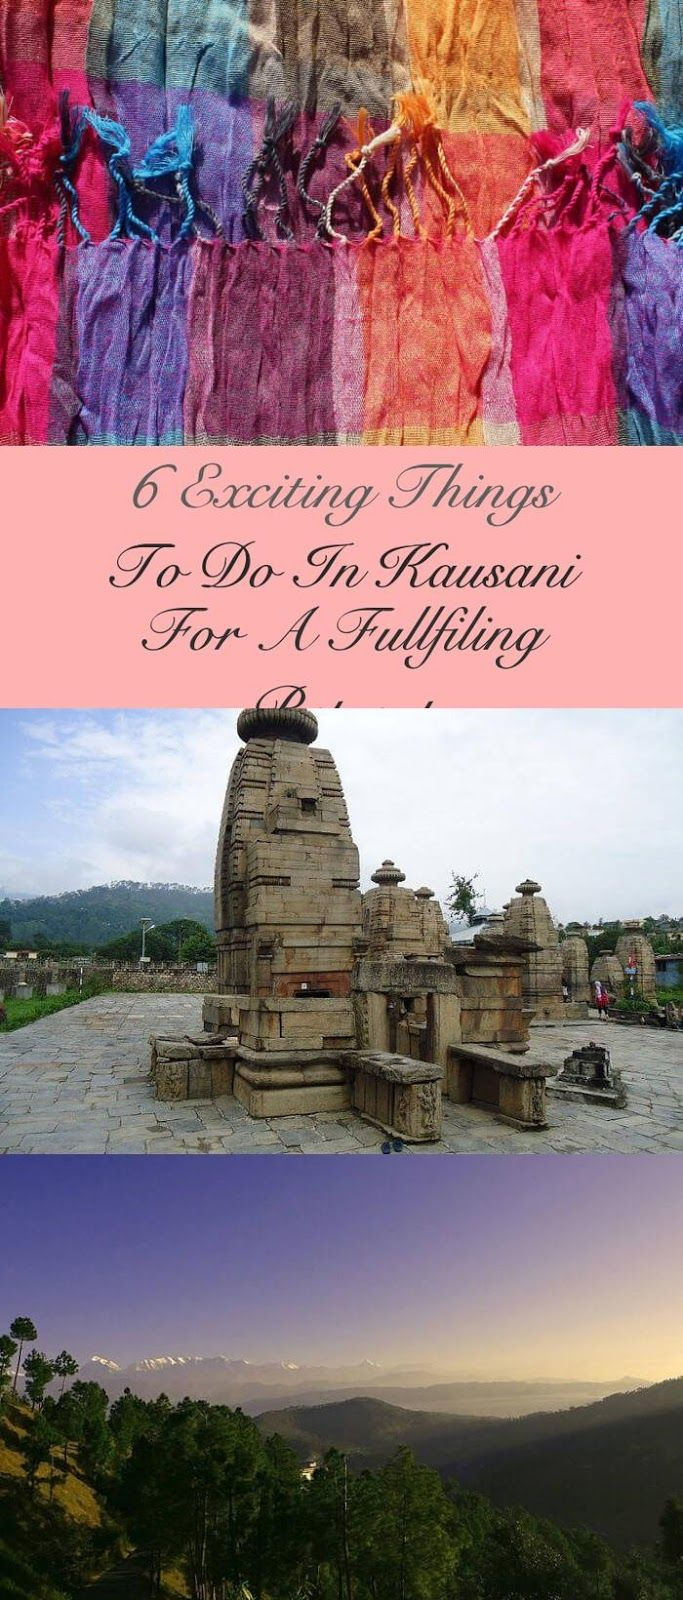 6 Thrilling Issues To Do In Kausani For A Fullfiling Retreat